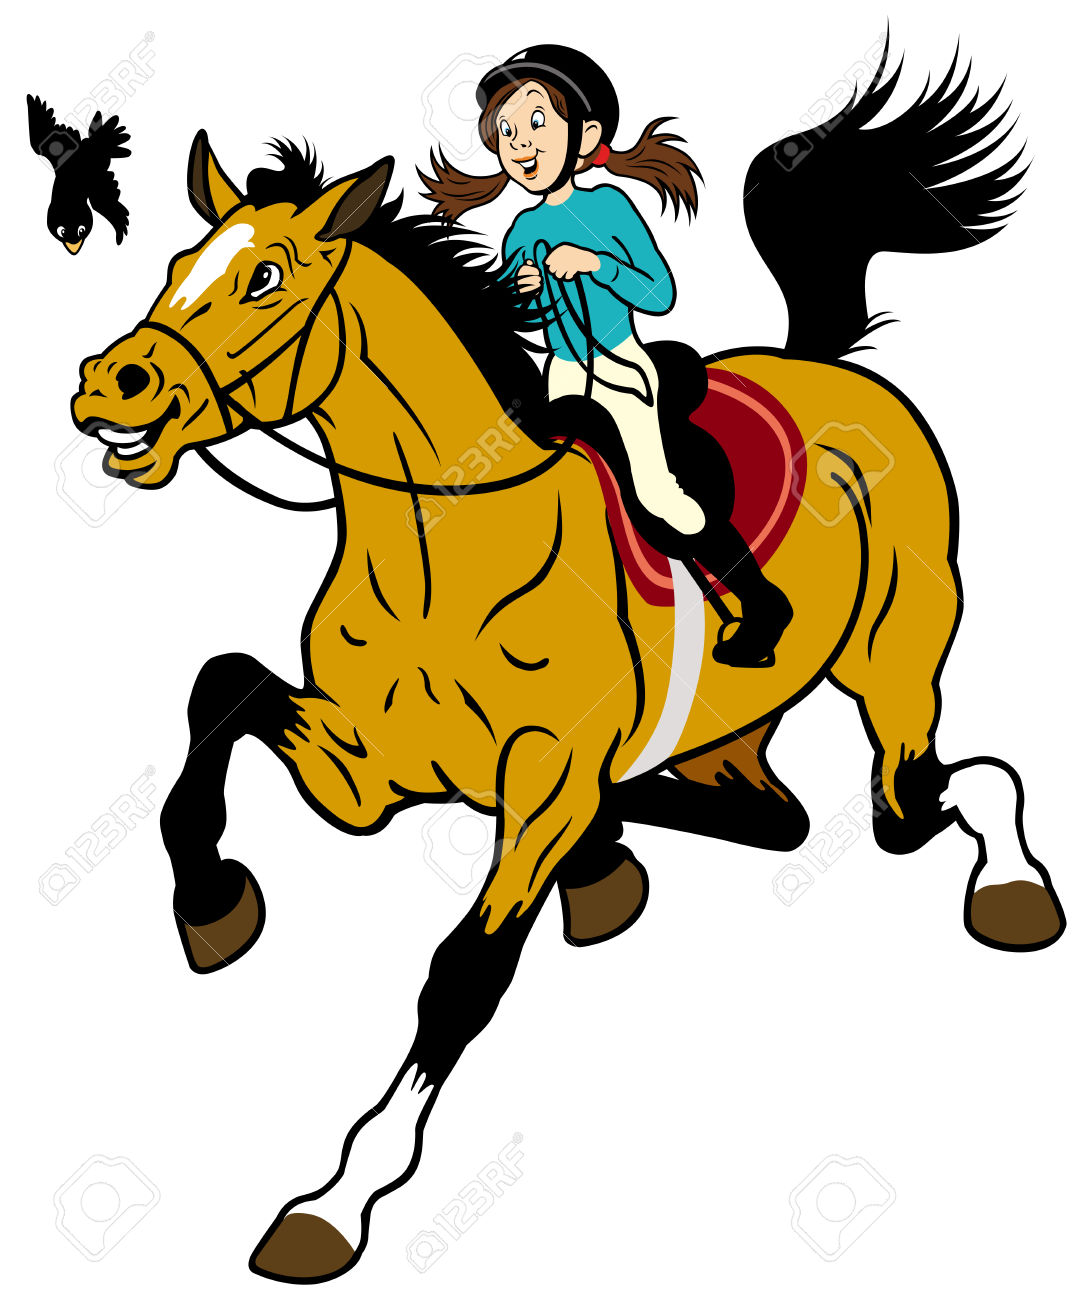 5,415 Horse Rider Stock Vector Illustration And Royalty Free Horse.